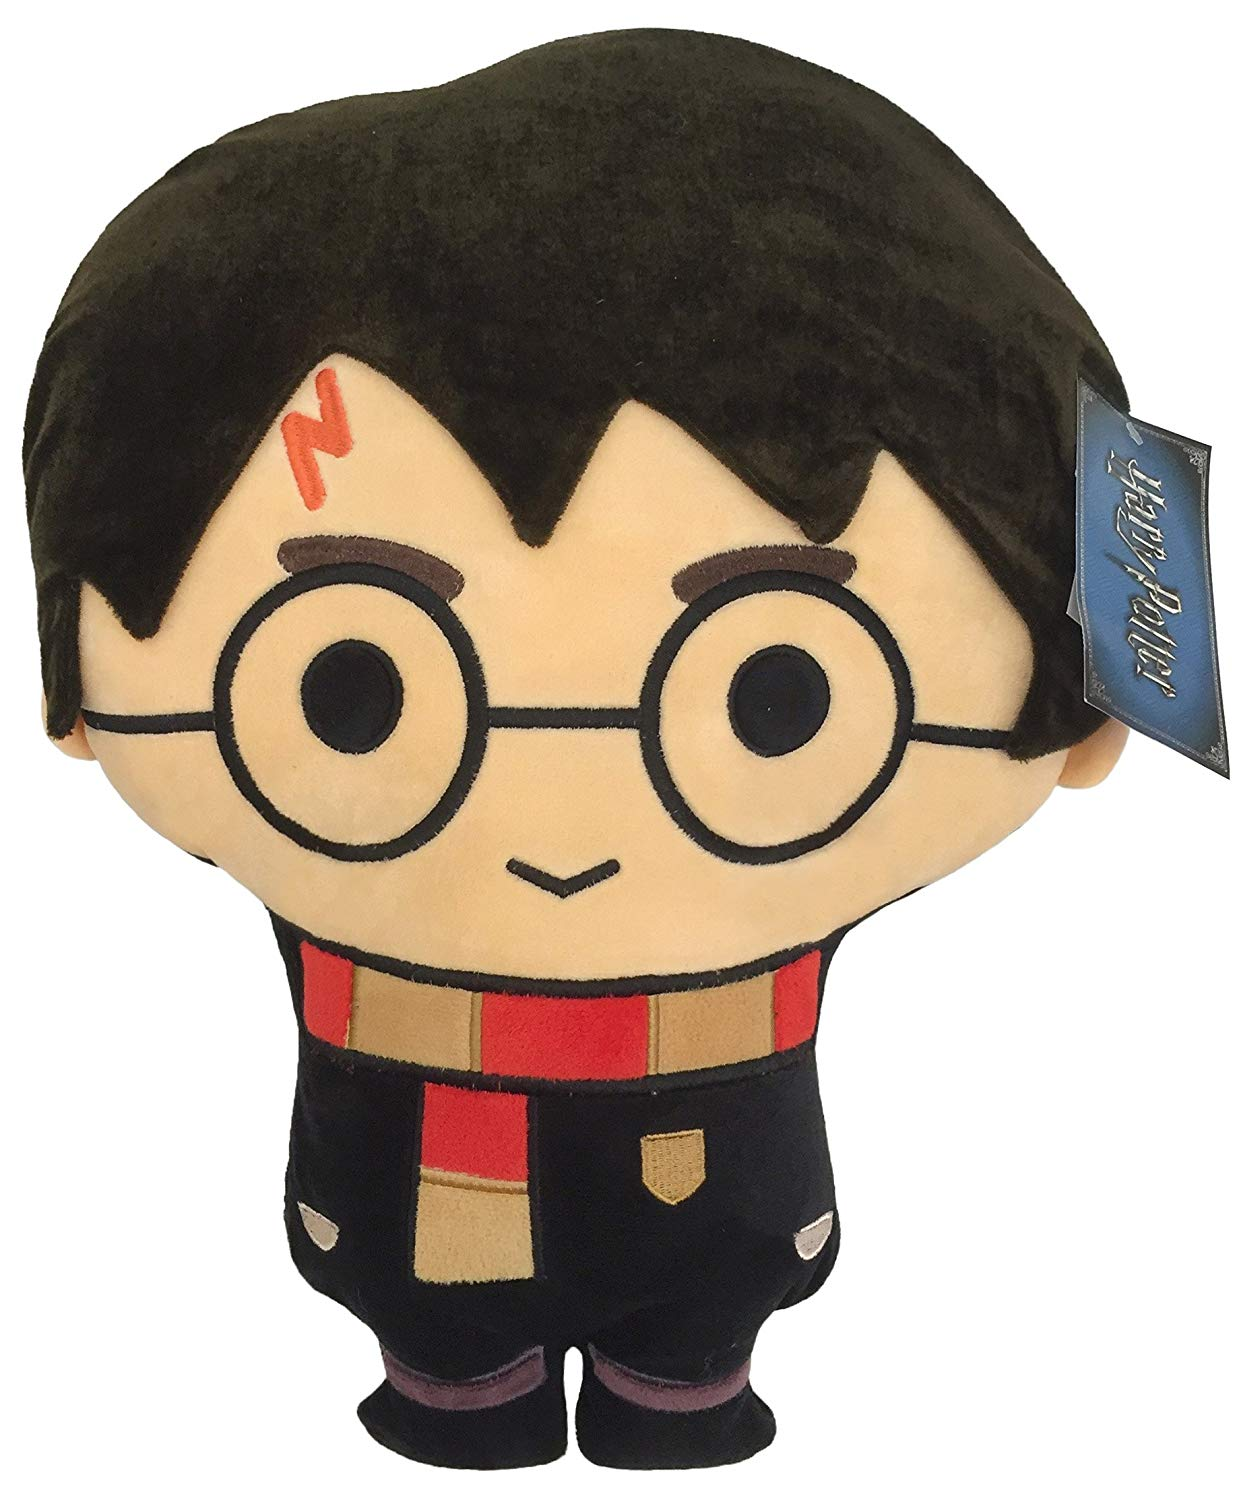 20 Of The Best Christmas Gifts For Harry Potter Fans